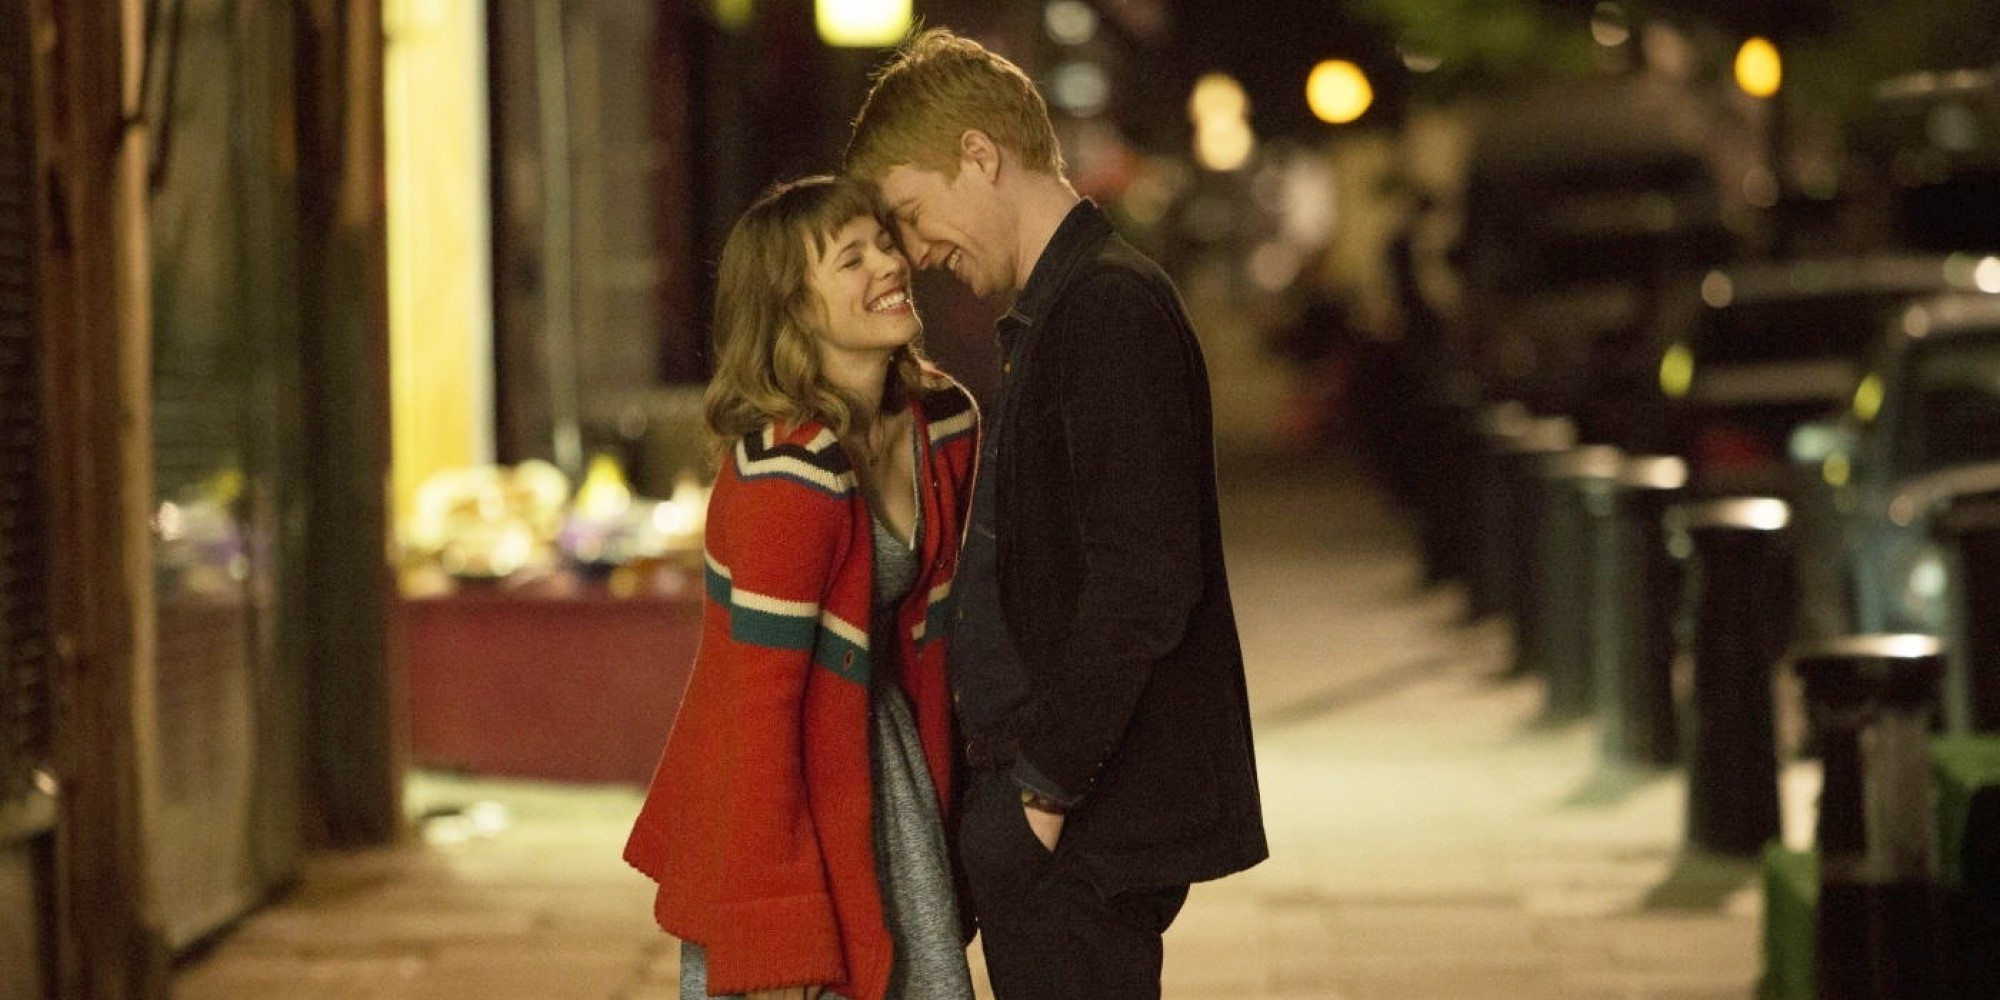 Richard Curtis Explains Why 'About Time' Is Not A Romantic Comedy | HuffPost